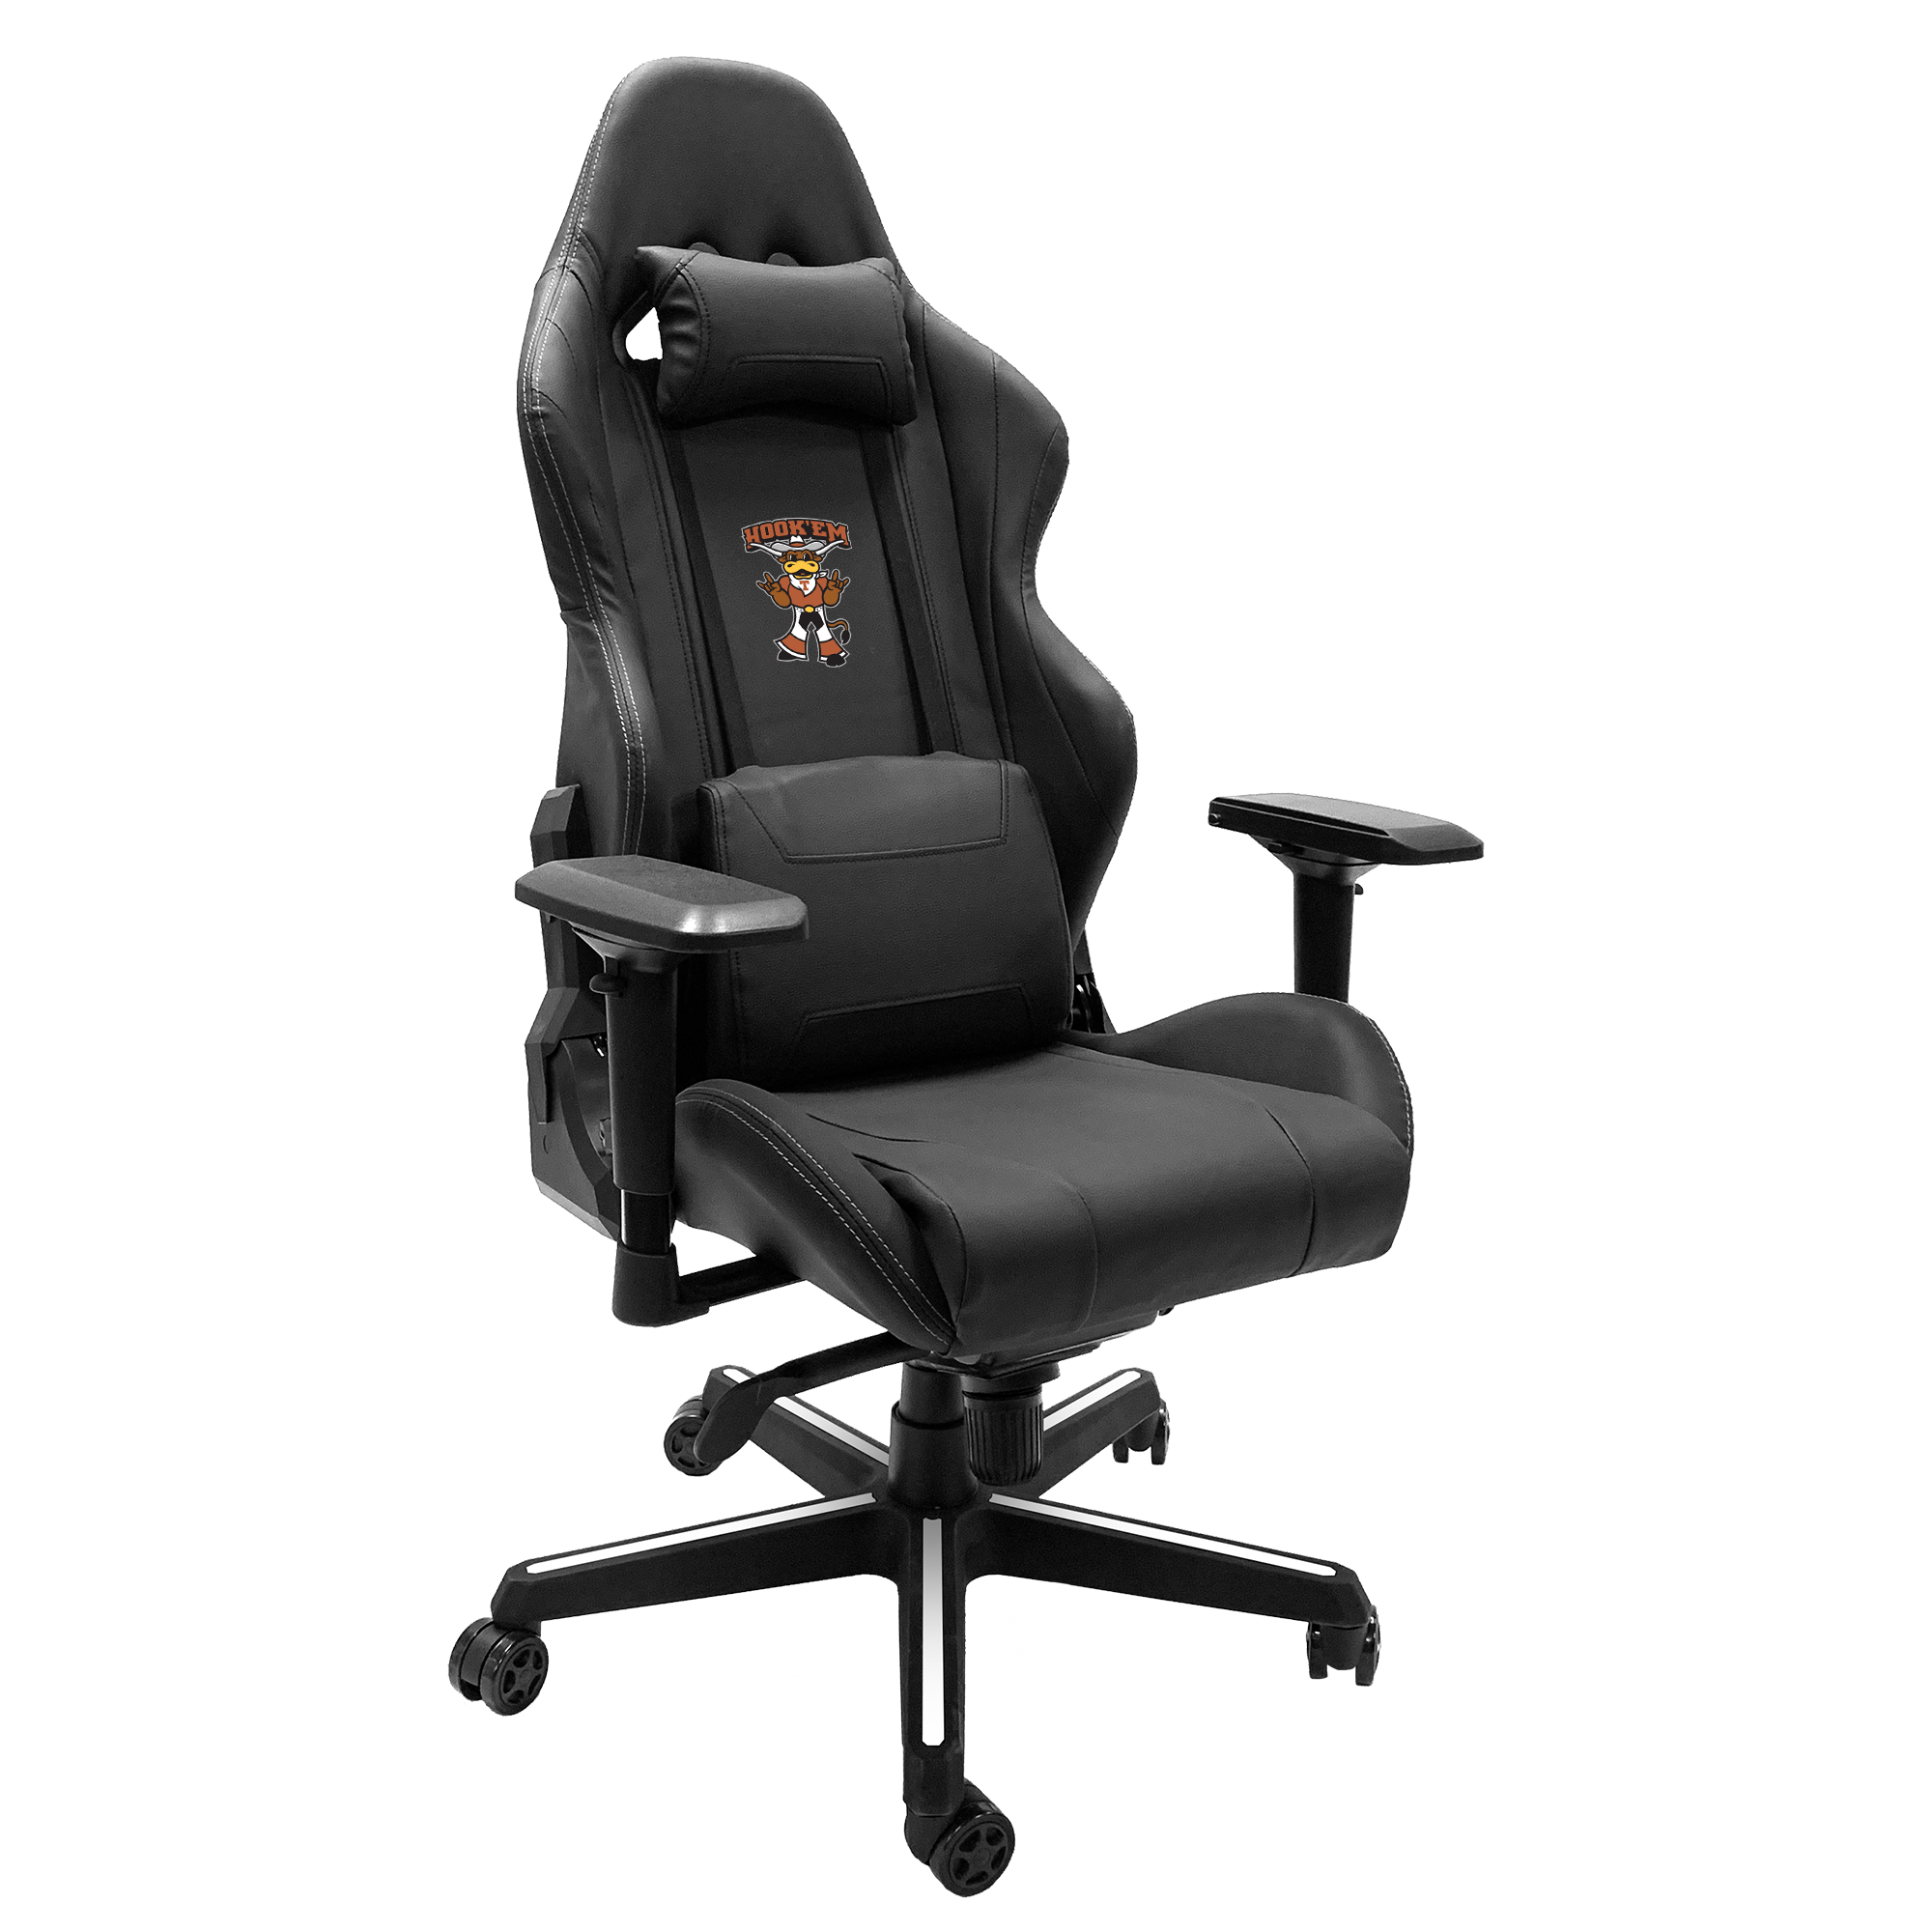 Xpression Gaming Chair with Texas Longhorns Alternate